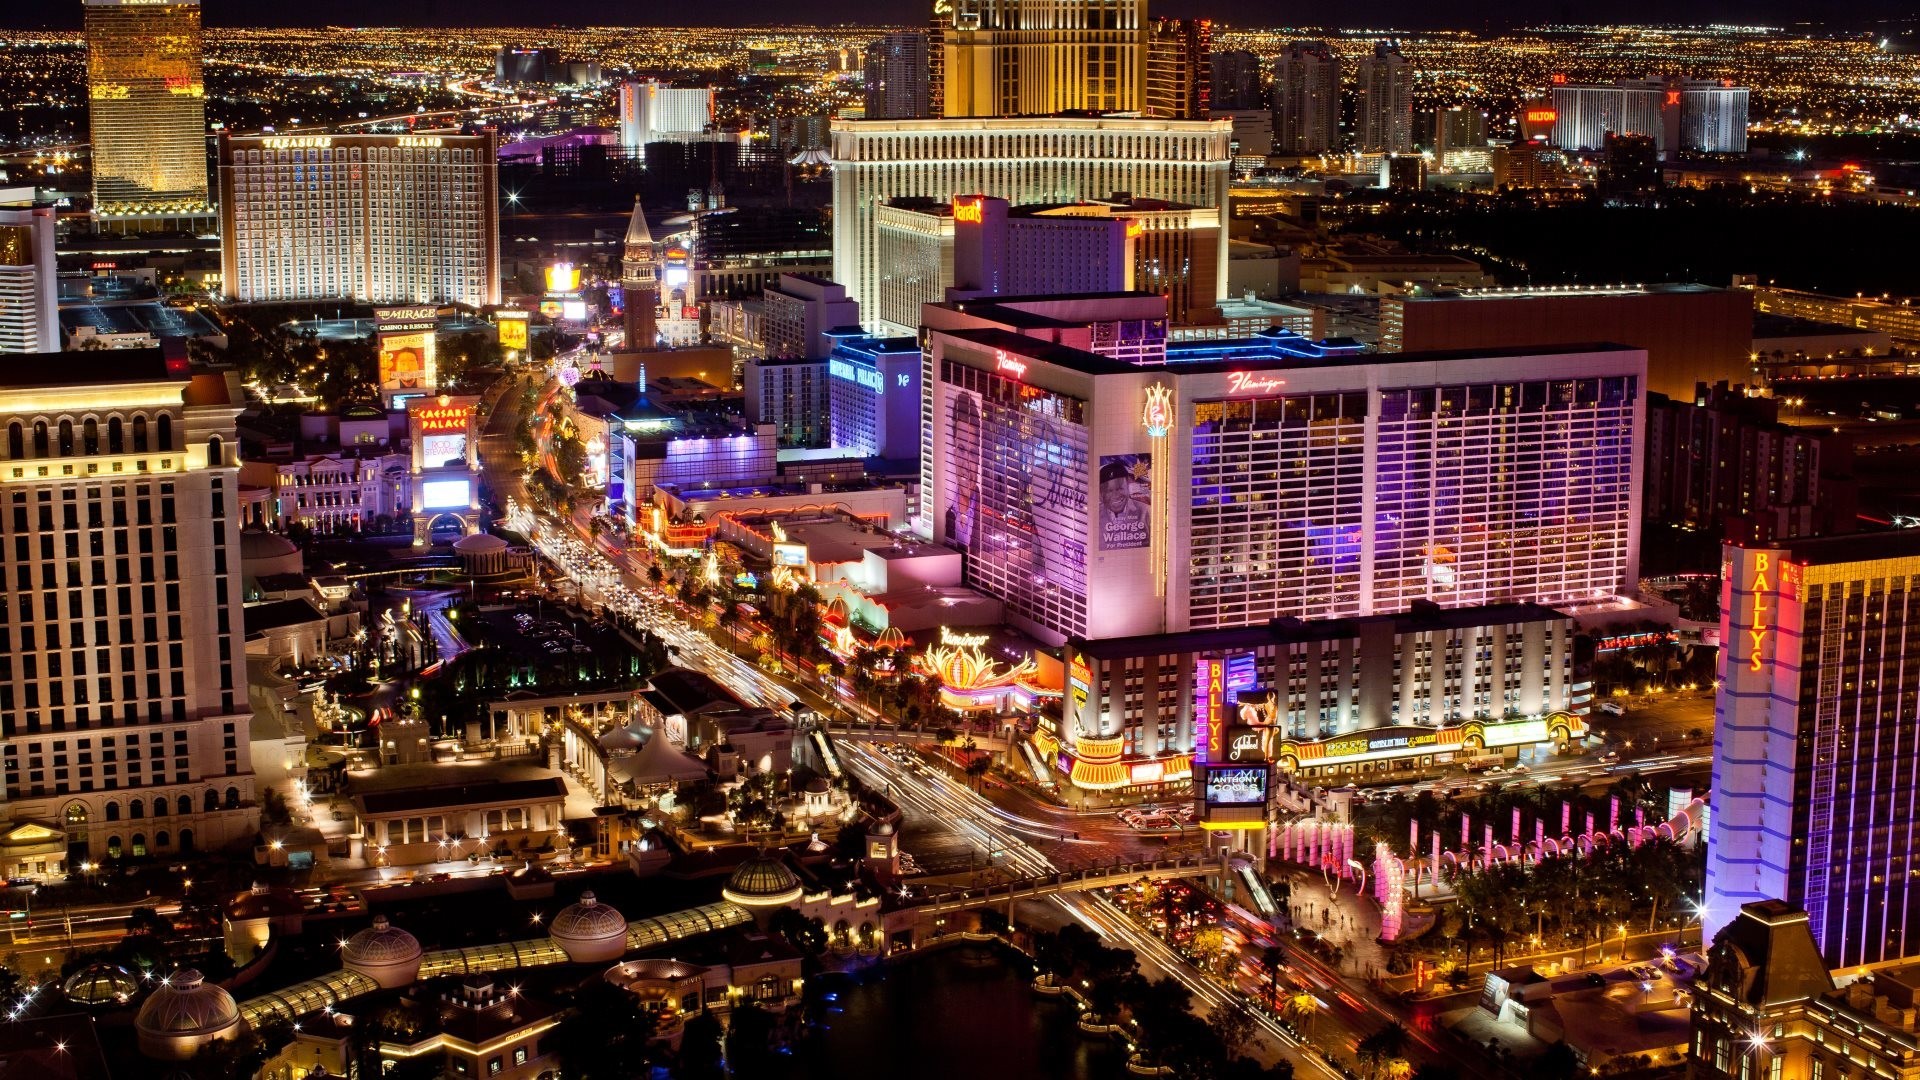 1920x1080 Las Vegas 4K Gallery Wallpapers · 4K HD Desktop Backgrounds Phone